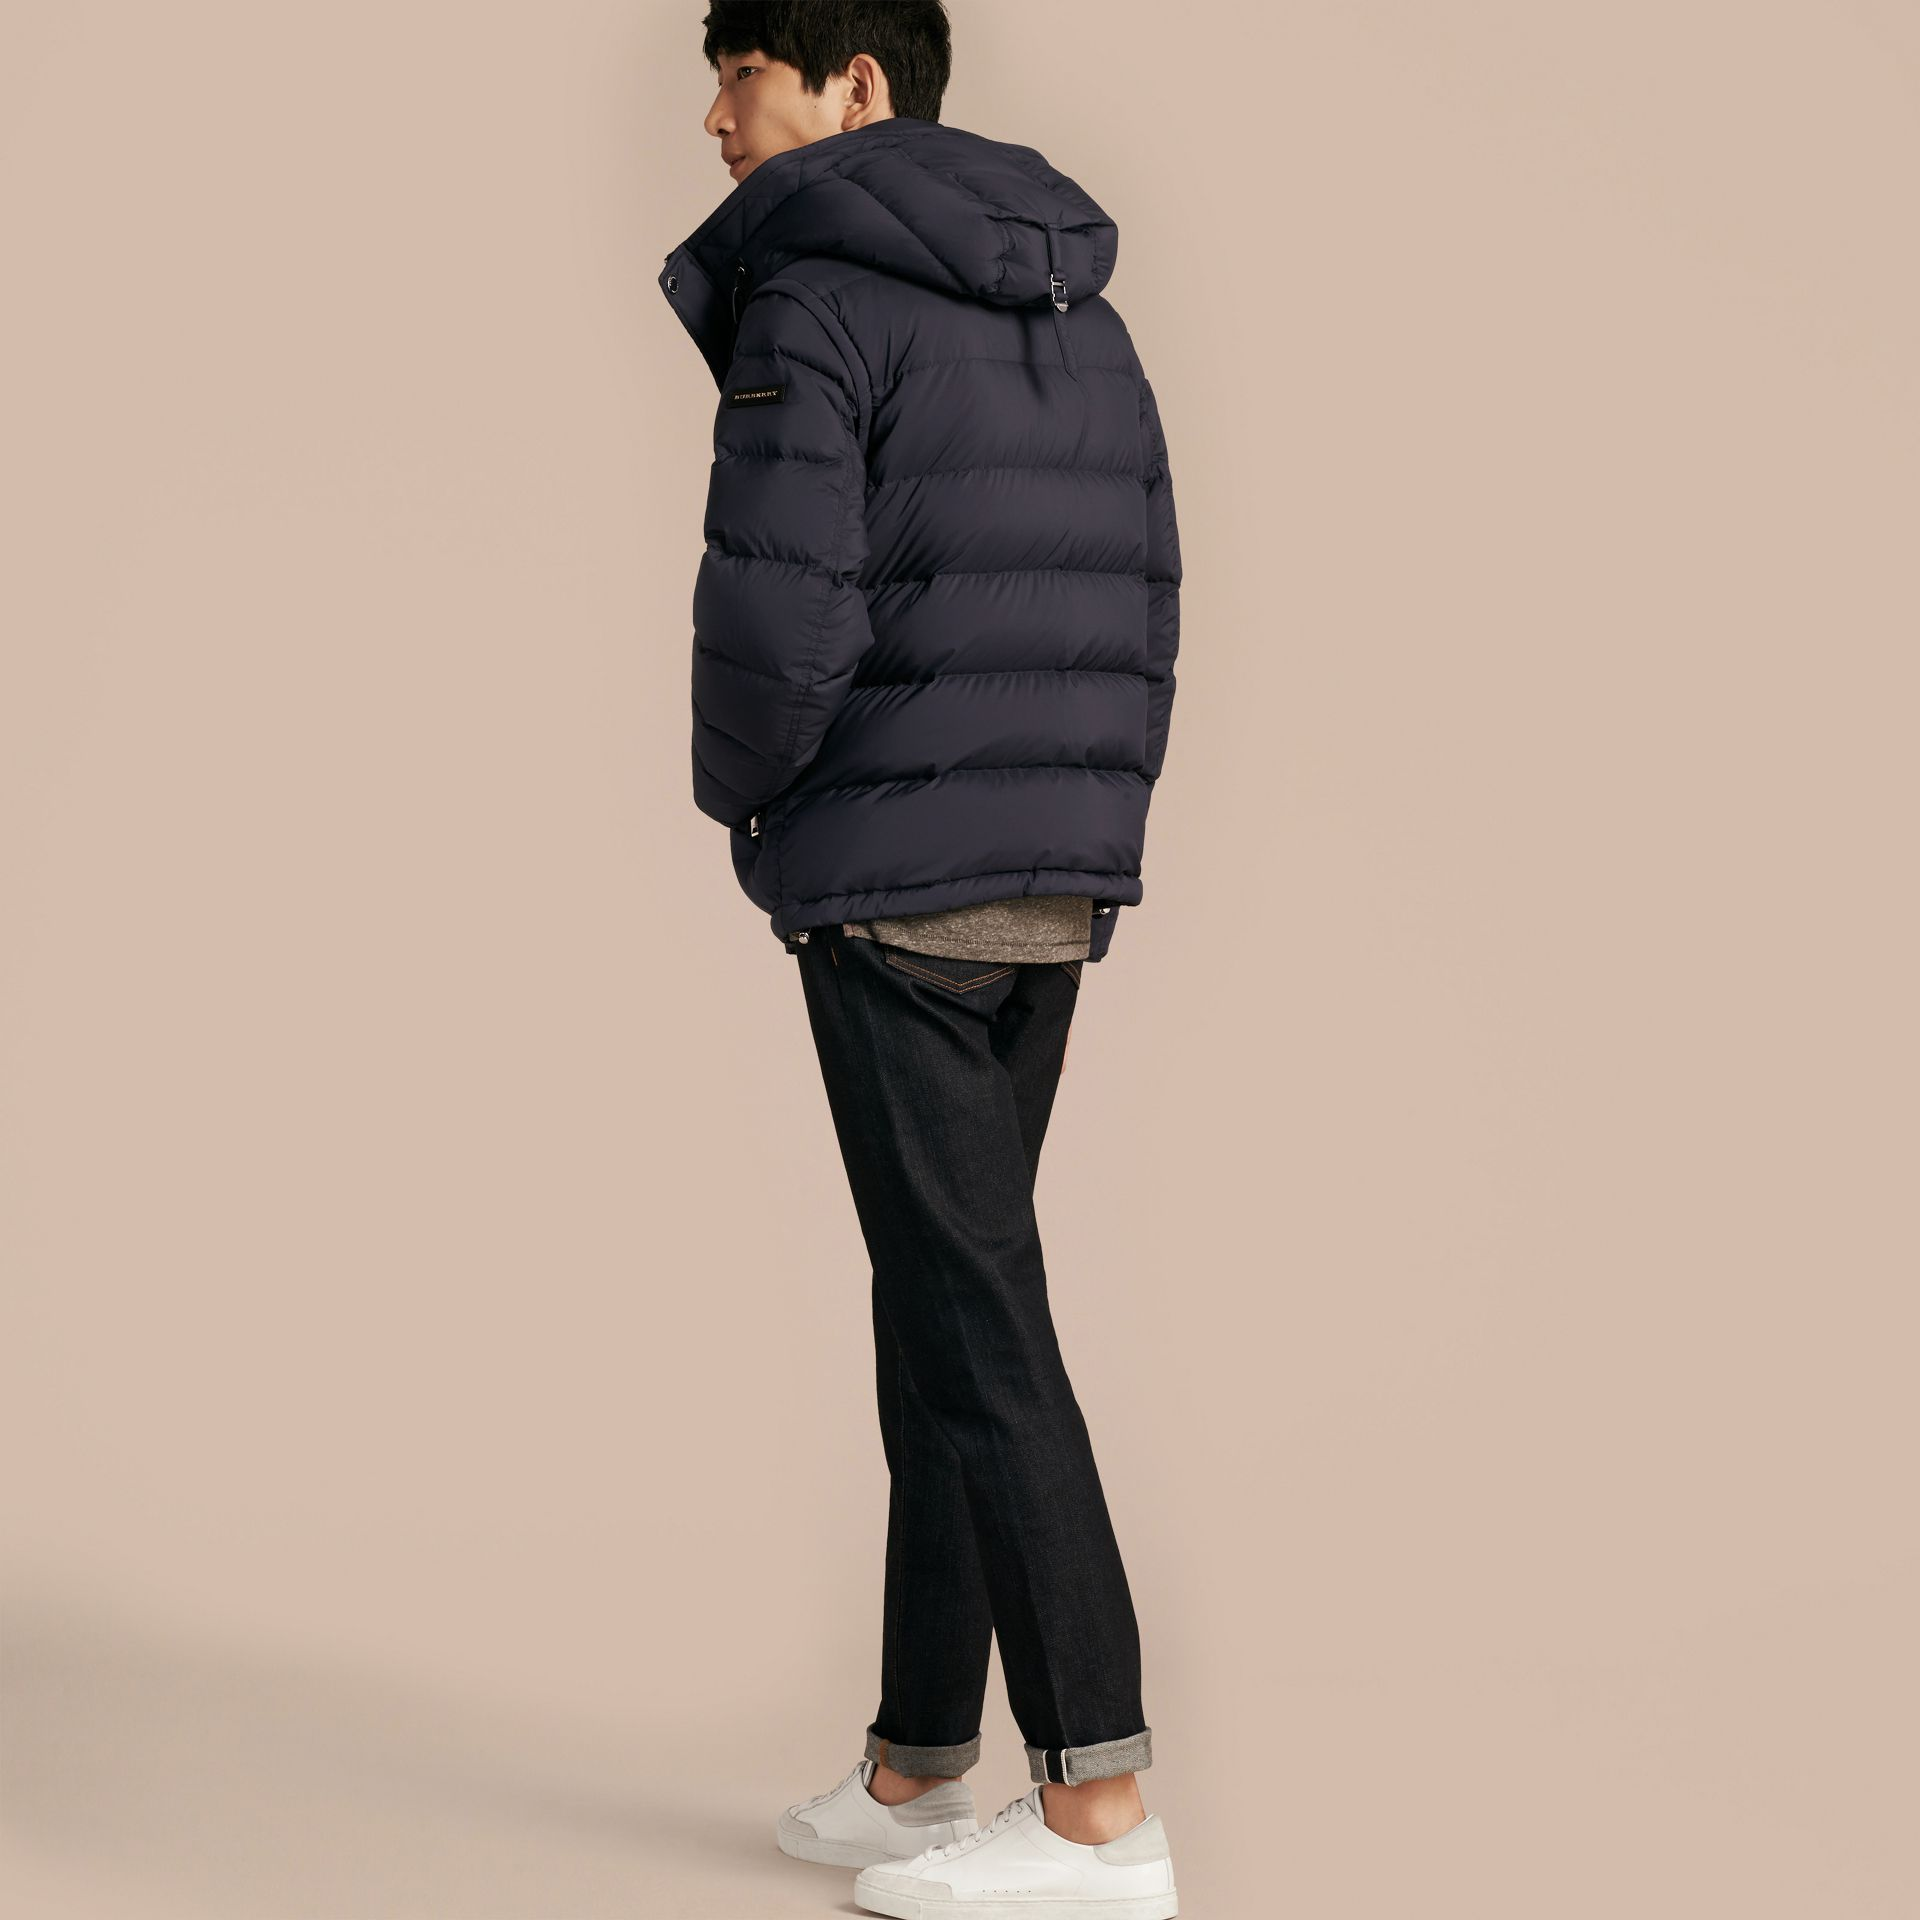 Navy Down-filled Hooded Jacket with Detachable Sleeves Navy - gallery image 3